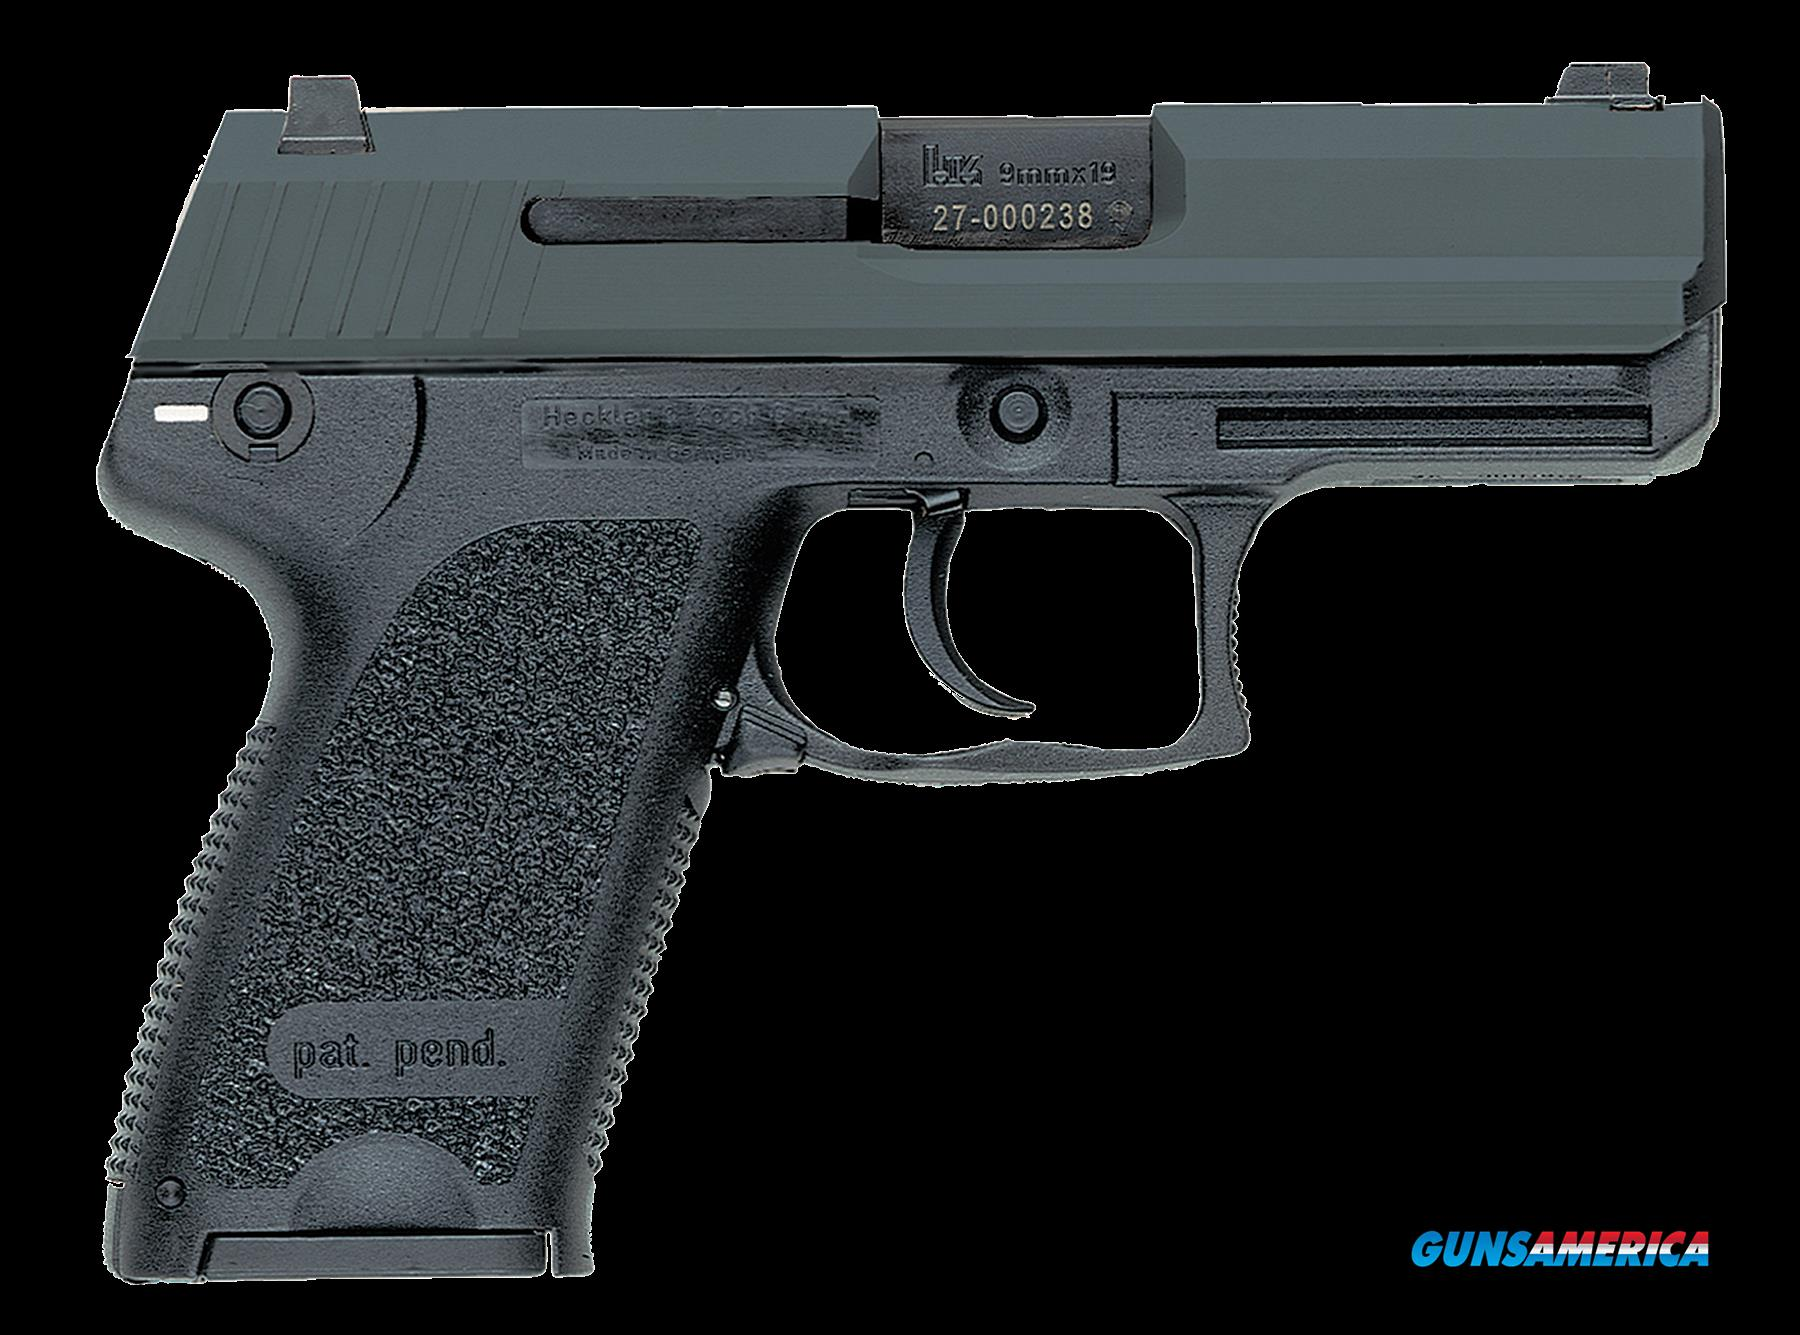 "HK 709037A5 USP9 Compact 9mm LEM 3.58"" 10+1 Polymer Grip Black Finish  Guns > Pistols > H Misc Pistols"